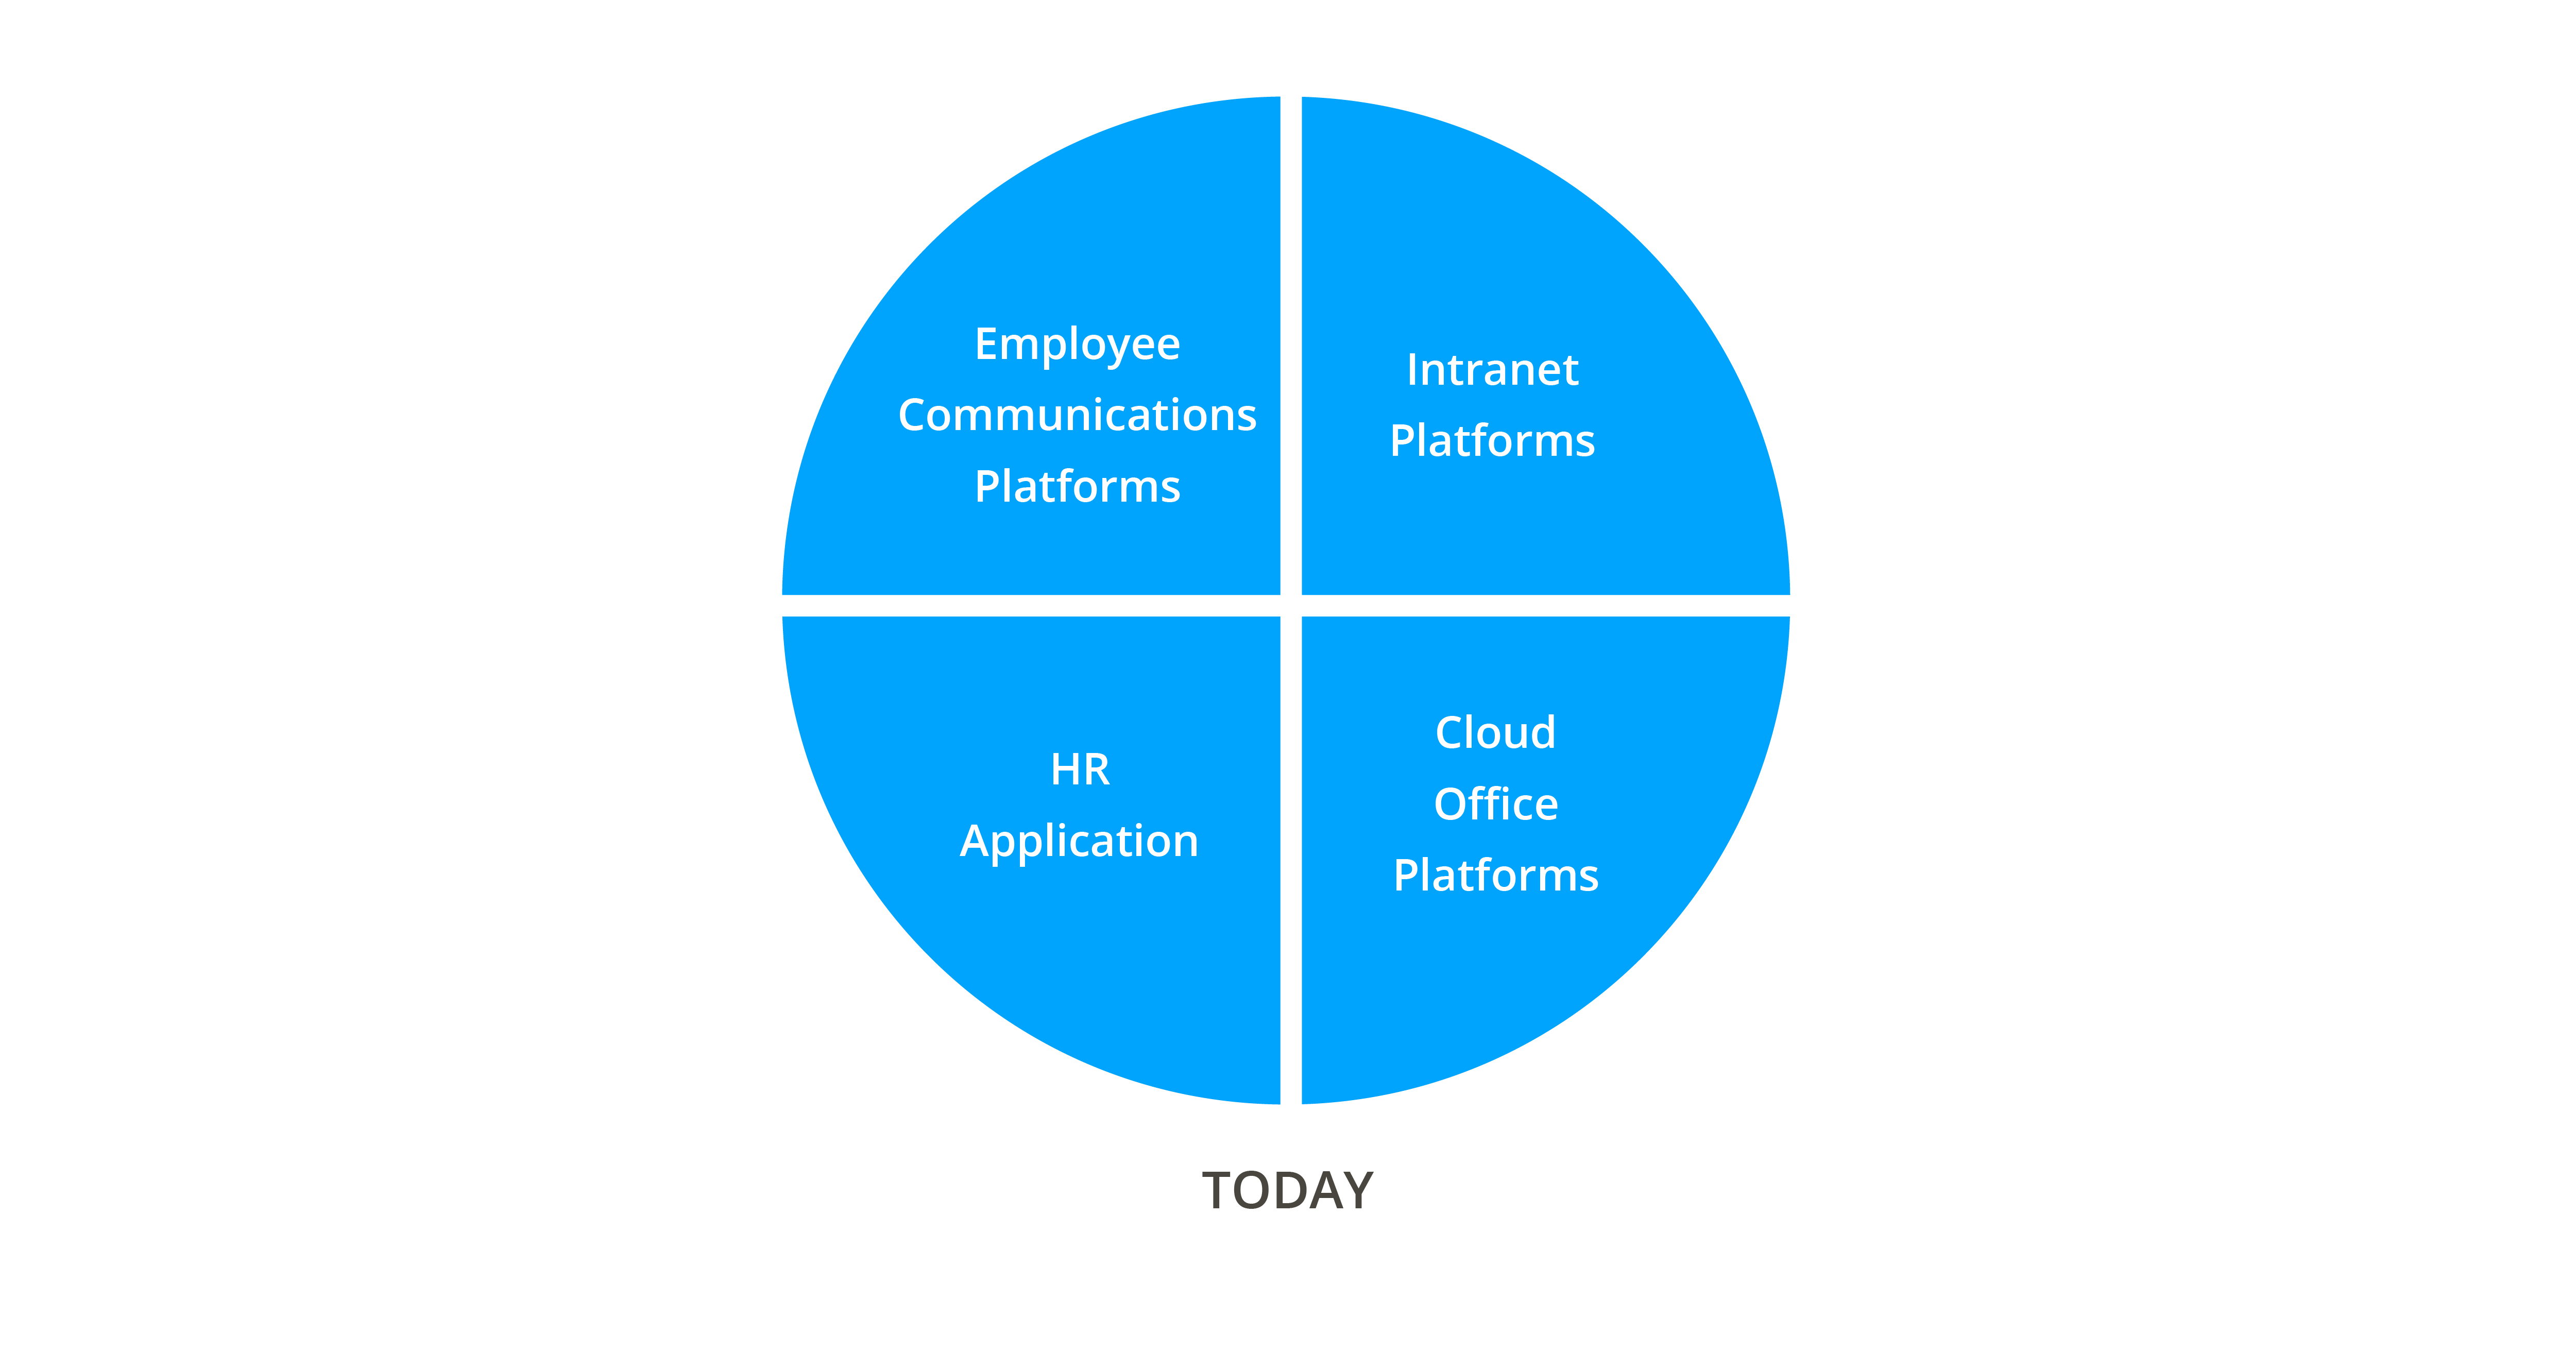 An illustration showing Gartner's simple overview of the four main categories of tools with the key areas defining today's digital workplace.